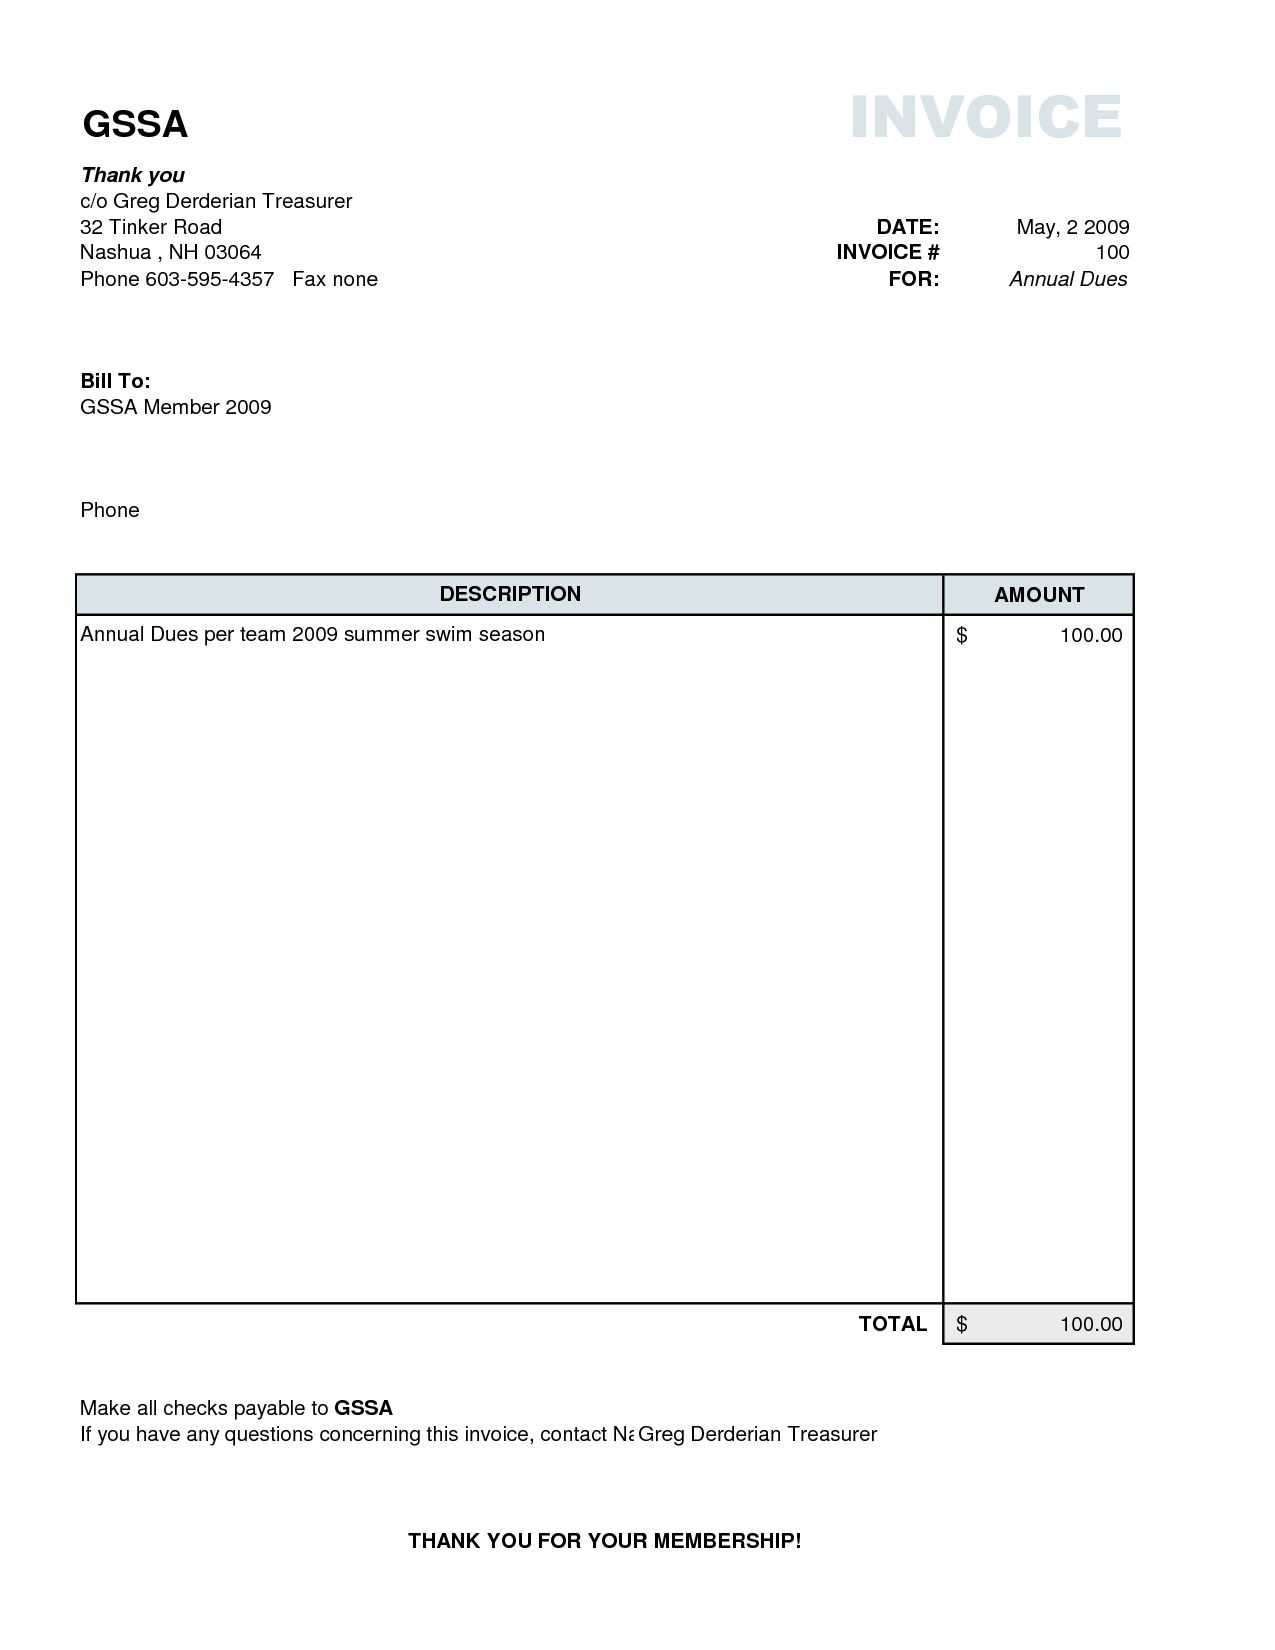 Simple Invoice Template Word Office Back Simple Invoice Form With Microsoft Office Word Invoice Template